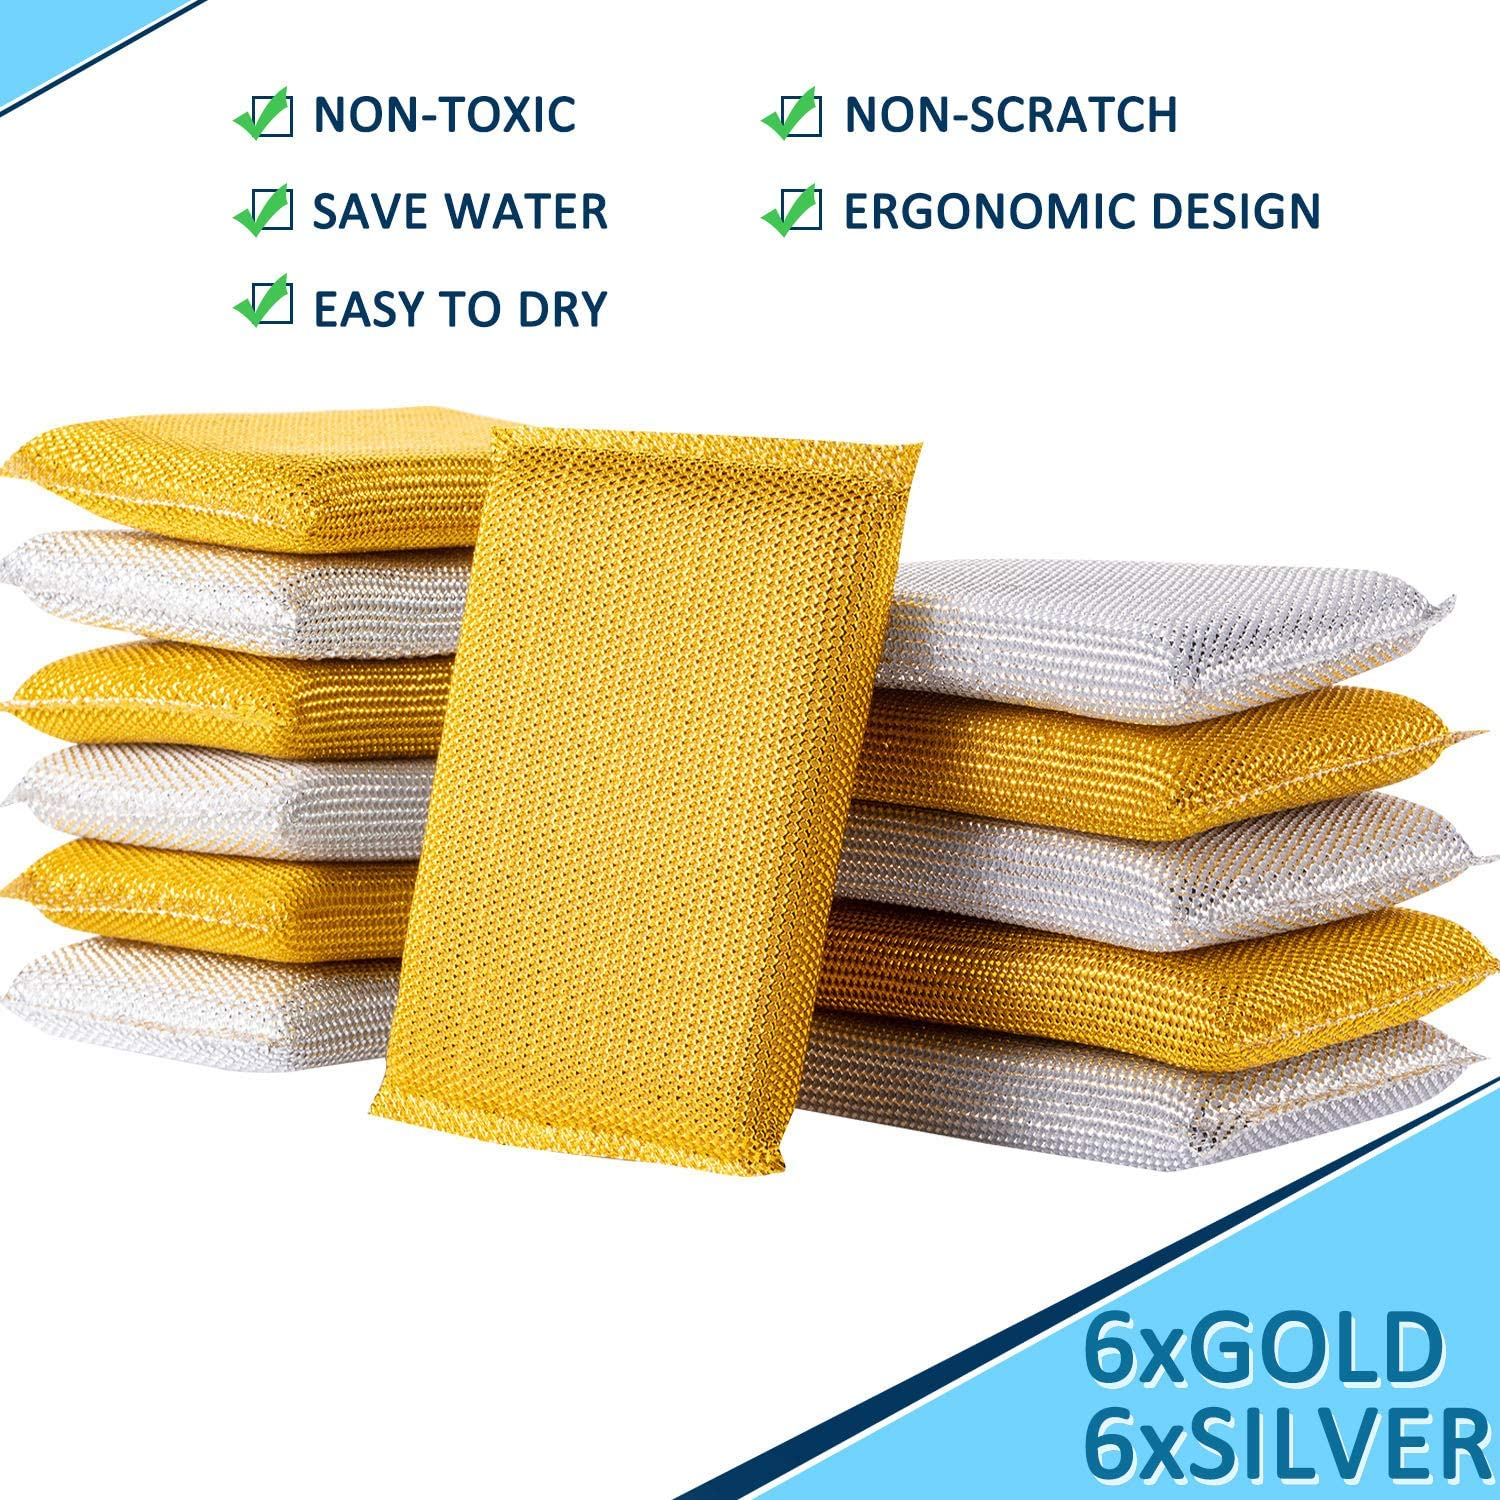 Heavy Duty Non-Scratch Scrubbing Cleaner Sponges Dish Washing and Bathroom Sponges Multi-Surface Non-Metal Dish Scouring Scrubbers 12 Pieces Scrubbing Sponges